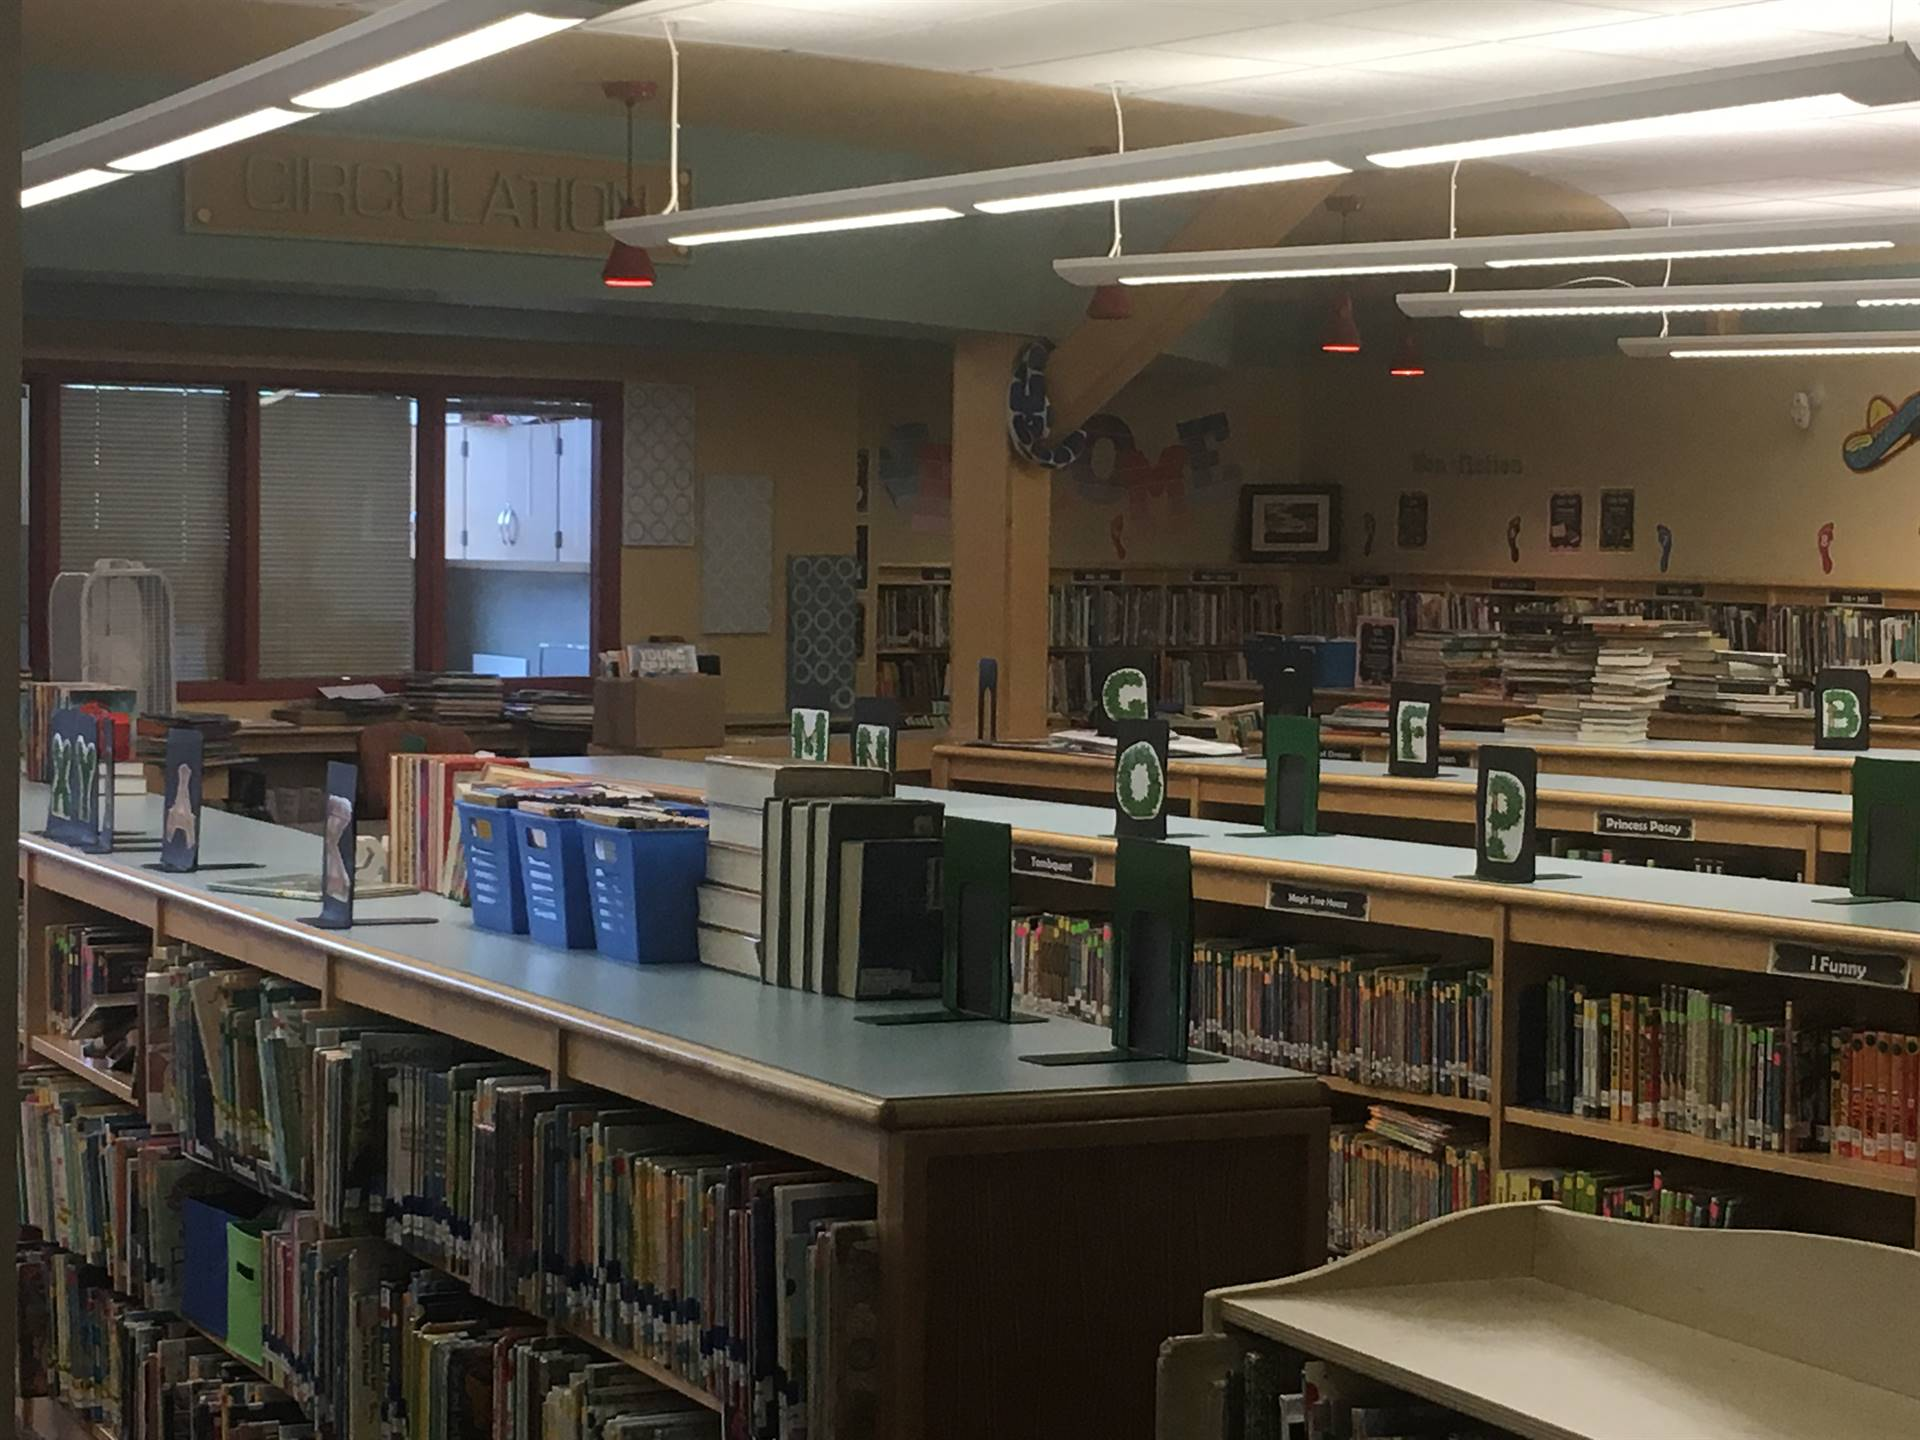 Highcliff Elementary Library